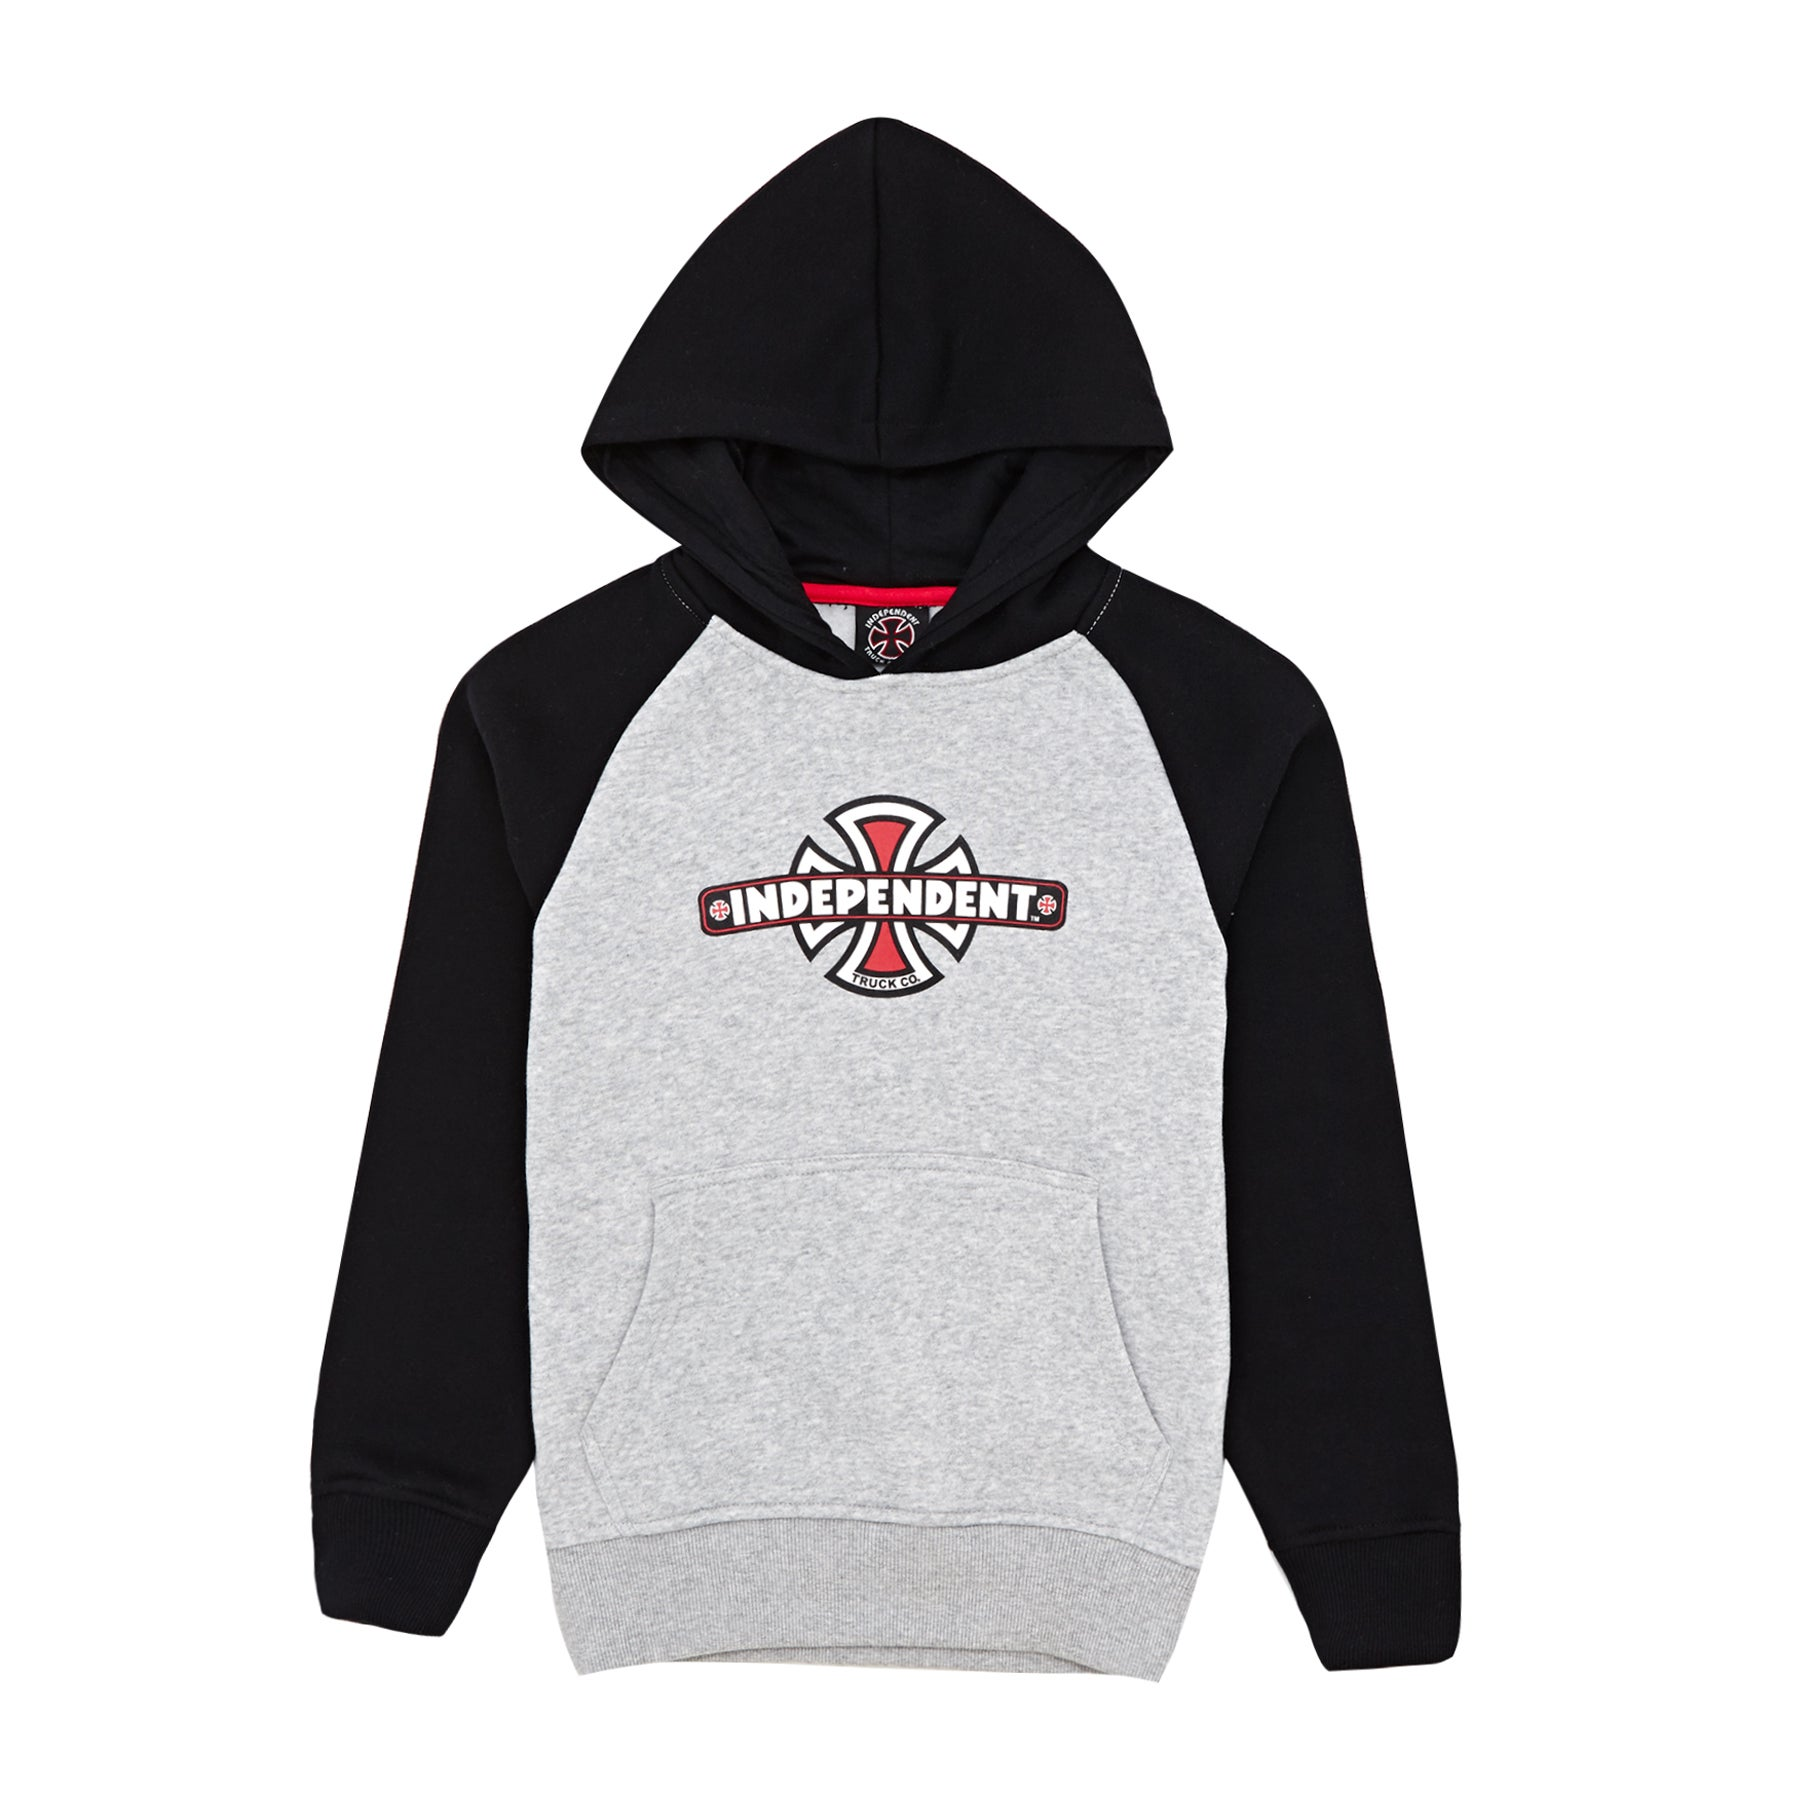 Independent Vintage Cross Kids Pullover Hoody - Black/athletic Heather